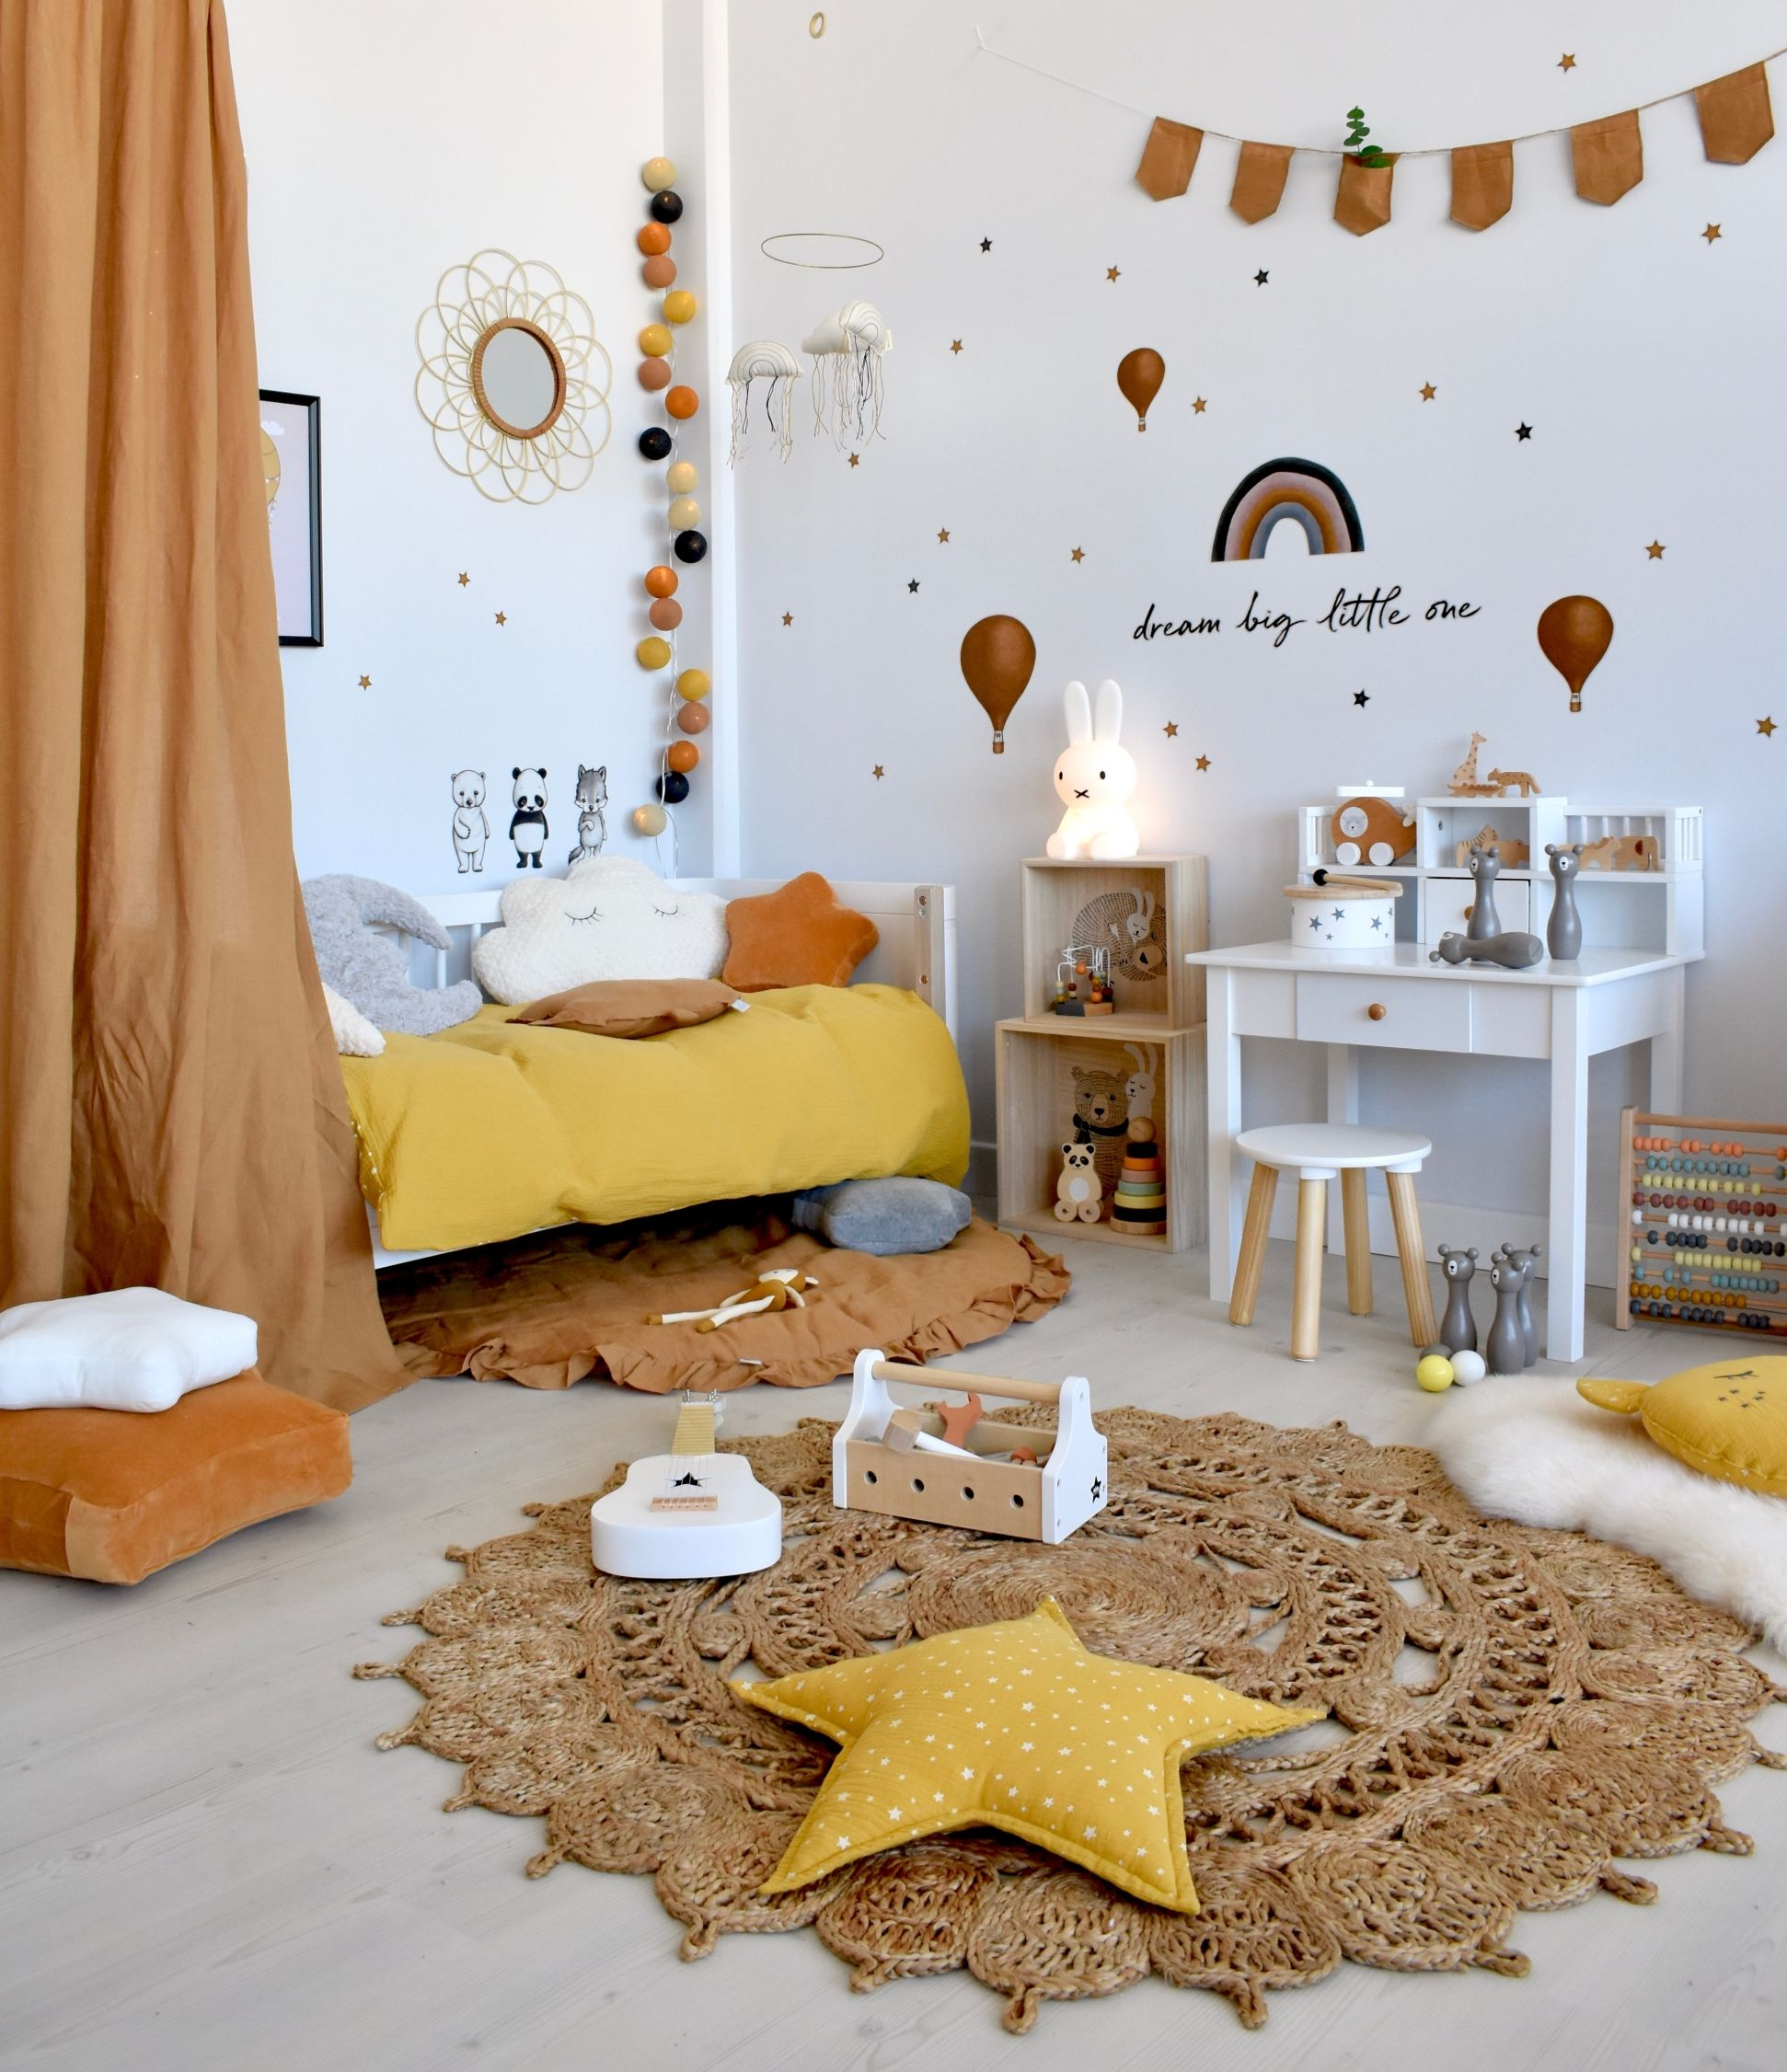 Photo of Kinderzimmer in Senfgelb & Camel mit Naturdeko bei Fantasyroom online kaufen